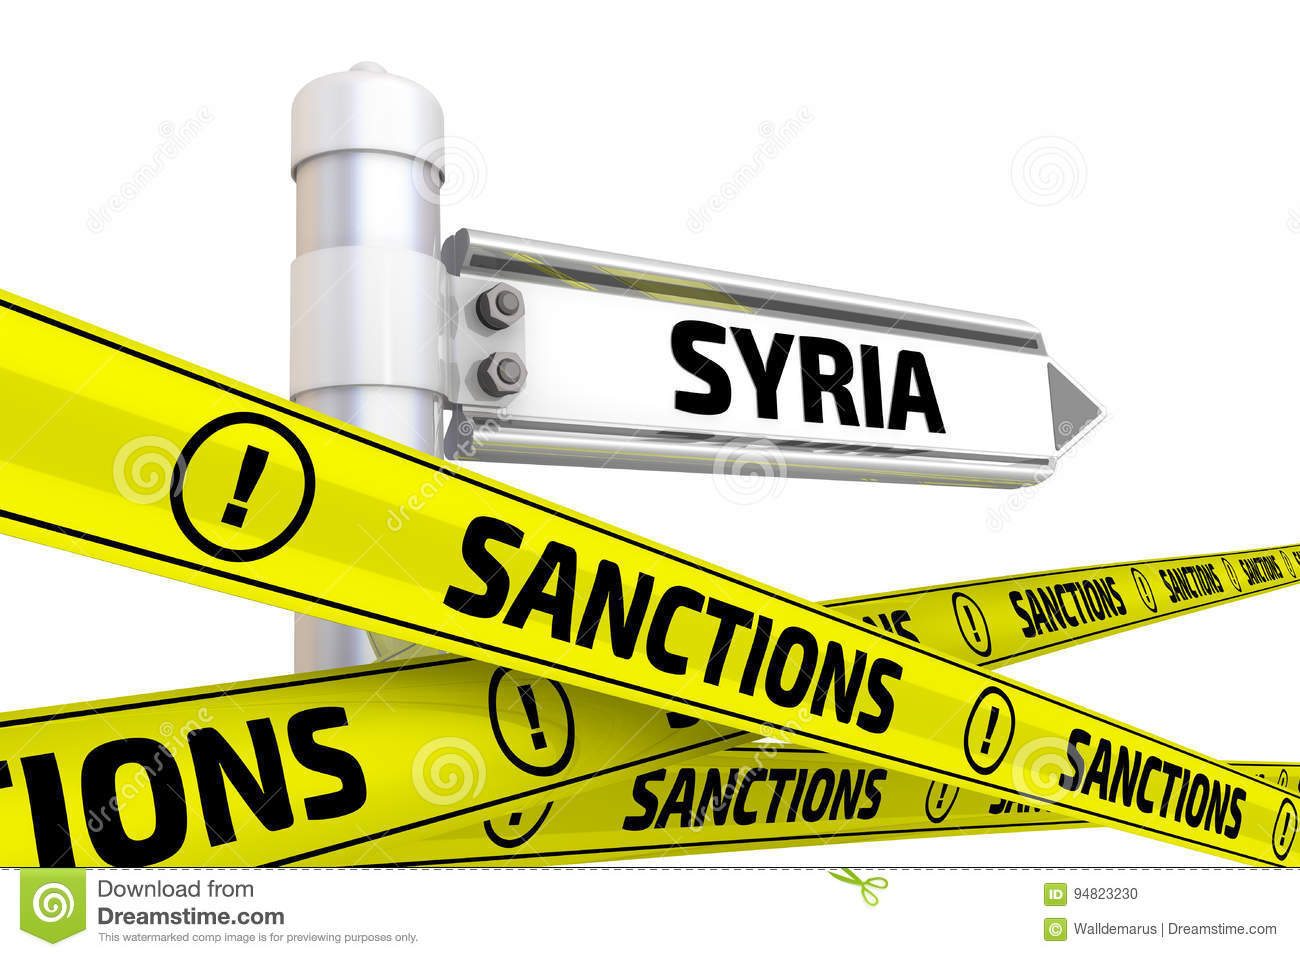 Sanctions on Damascus: U.S'  First Bargaining Chip